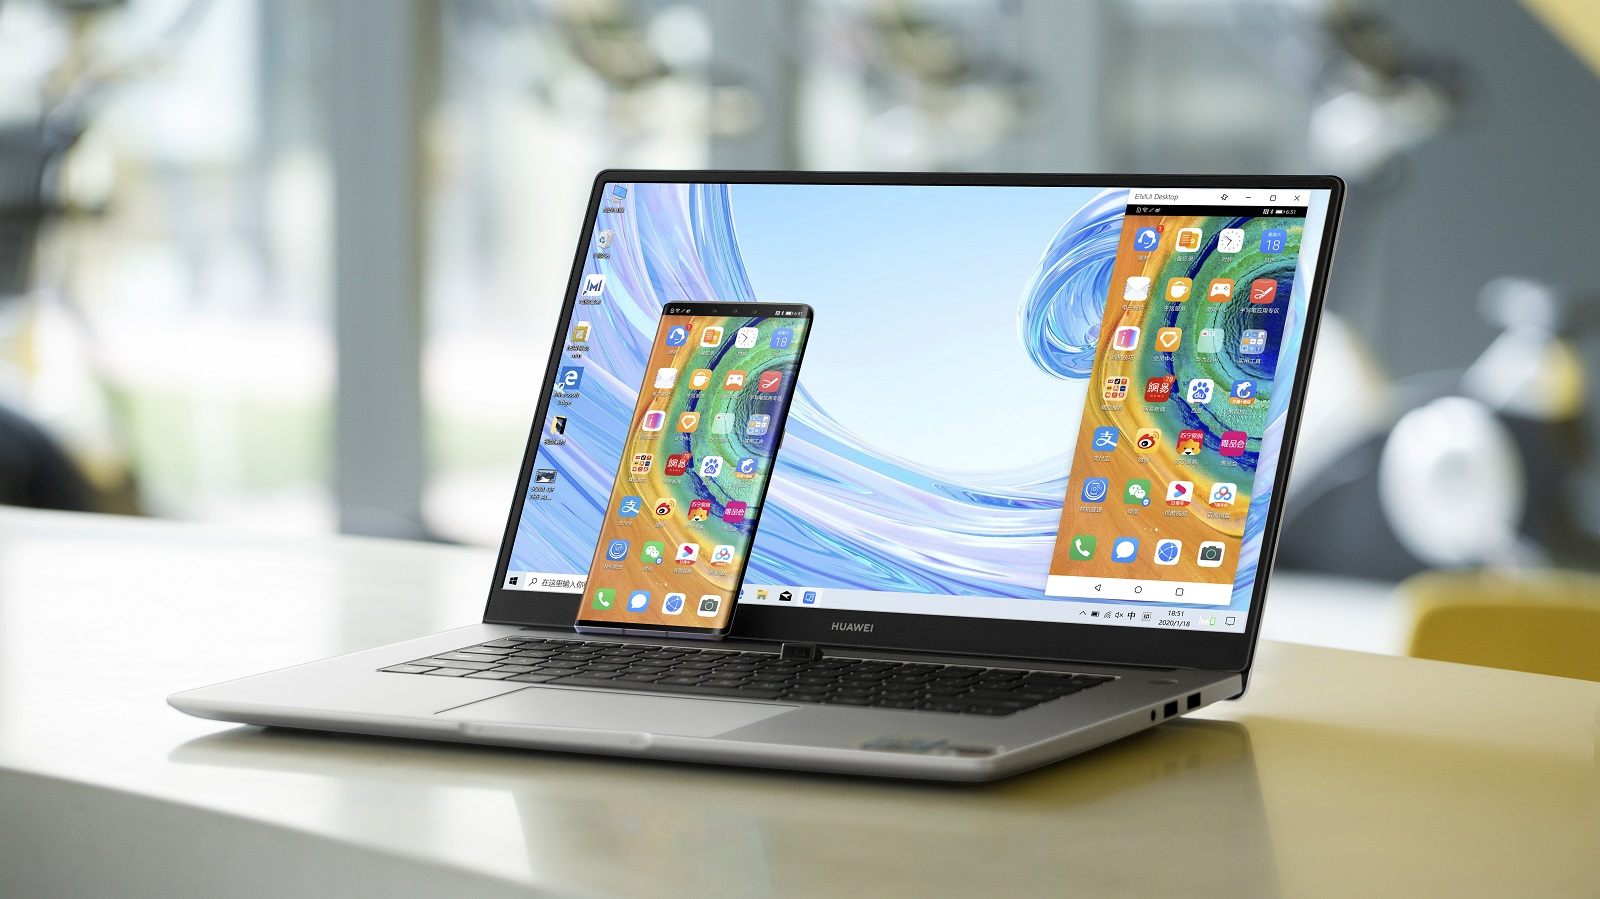 MateBook D 14 vs MateBook D 15: What's the difference between Huawei's affordable laptops? [Sponsored] - Gearburn - gearburn